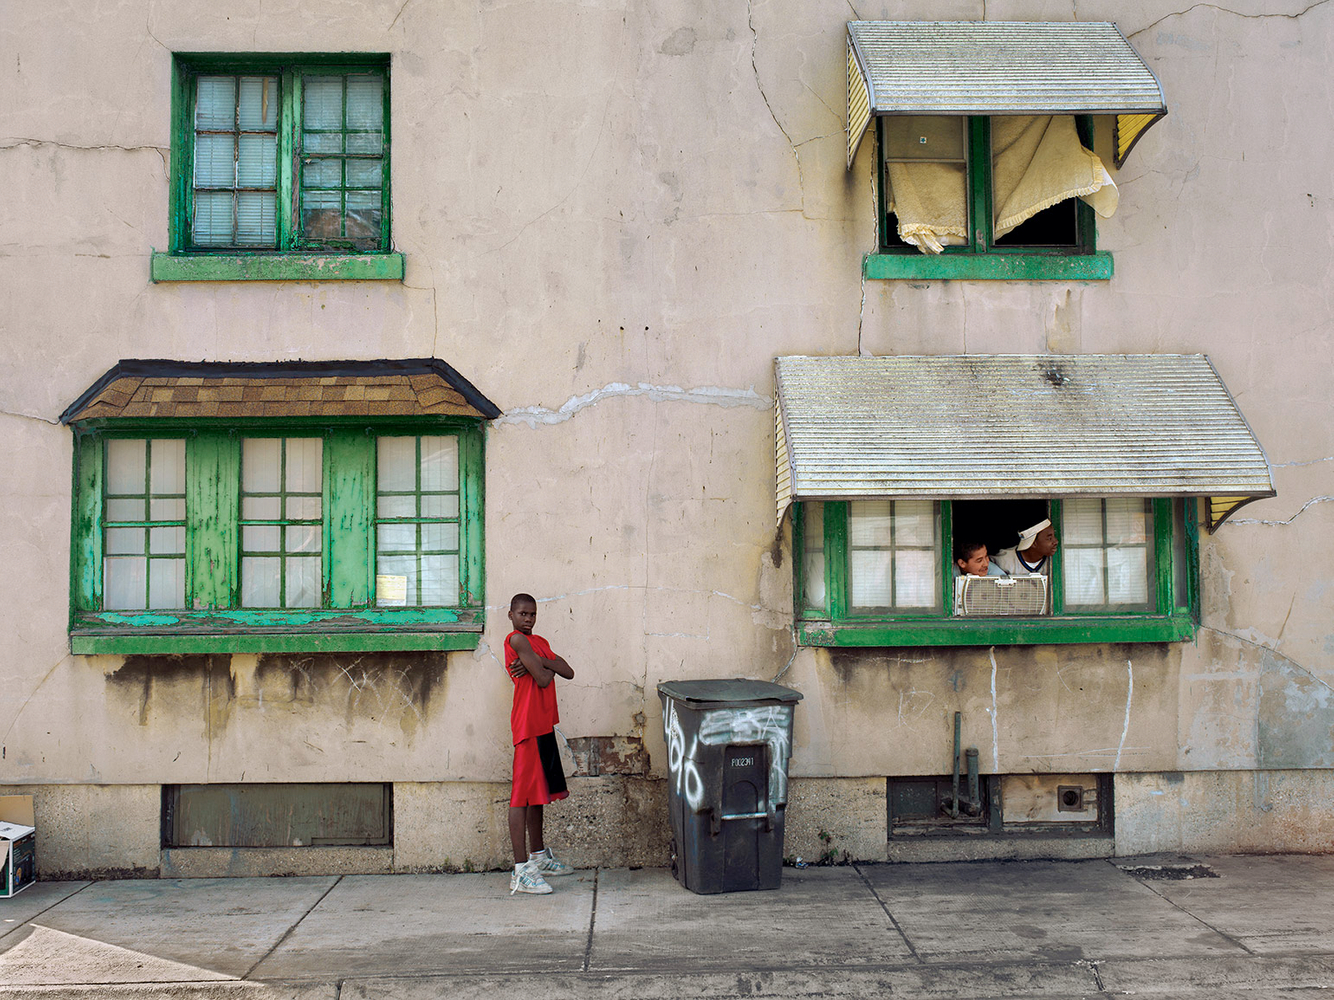 Boy in Red, Marktown, East Chicago, IN 2004